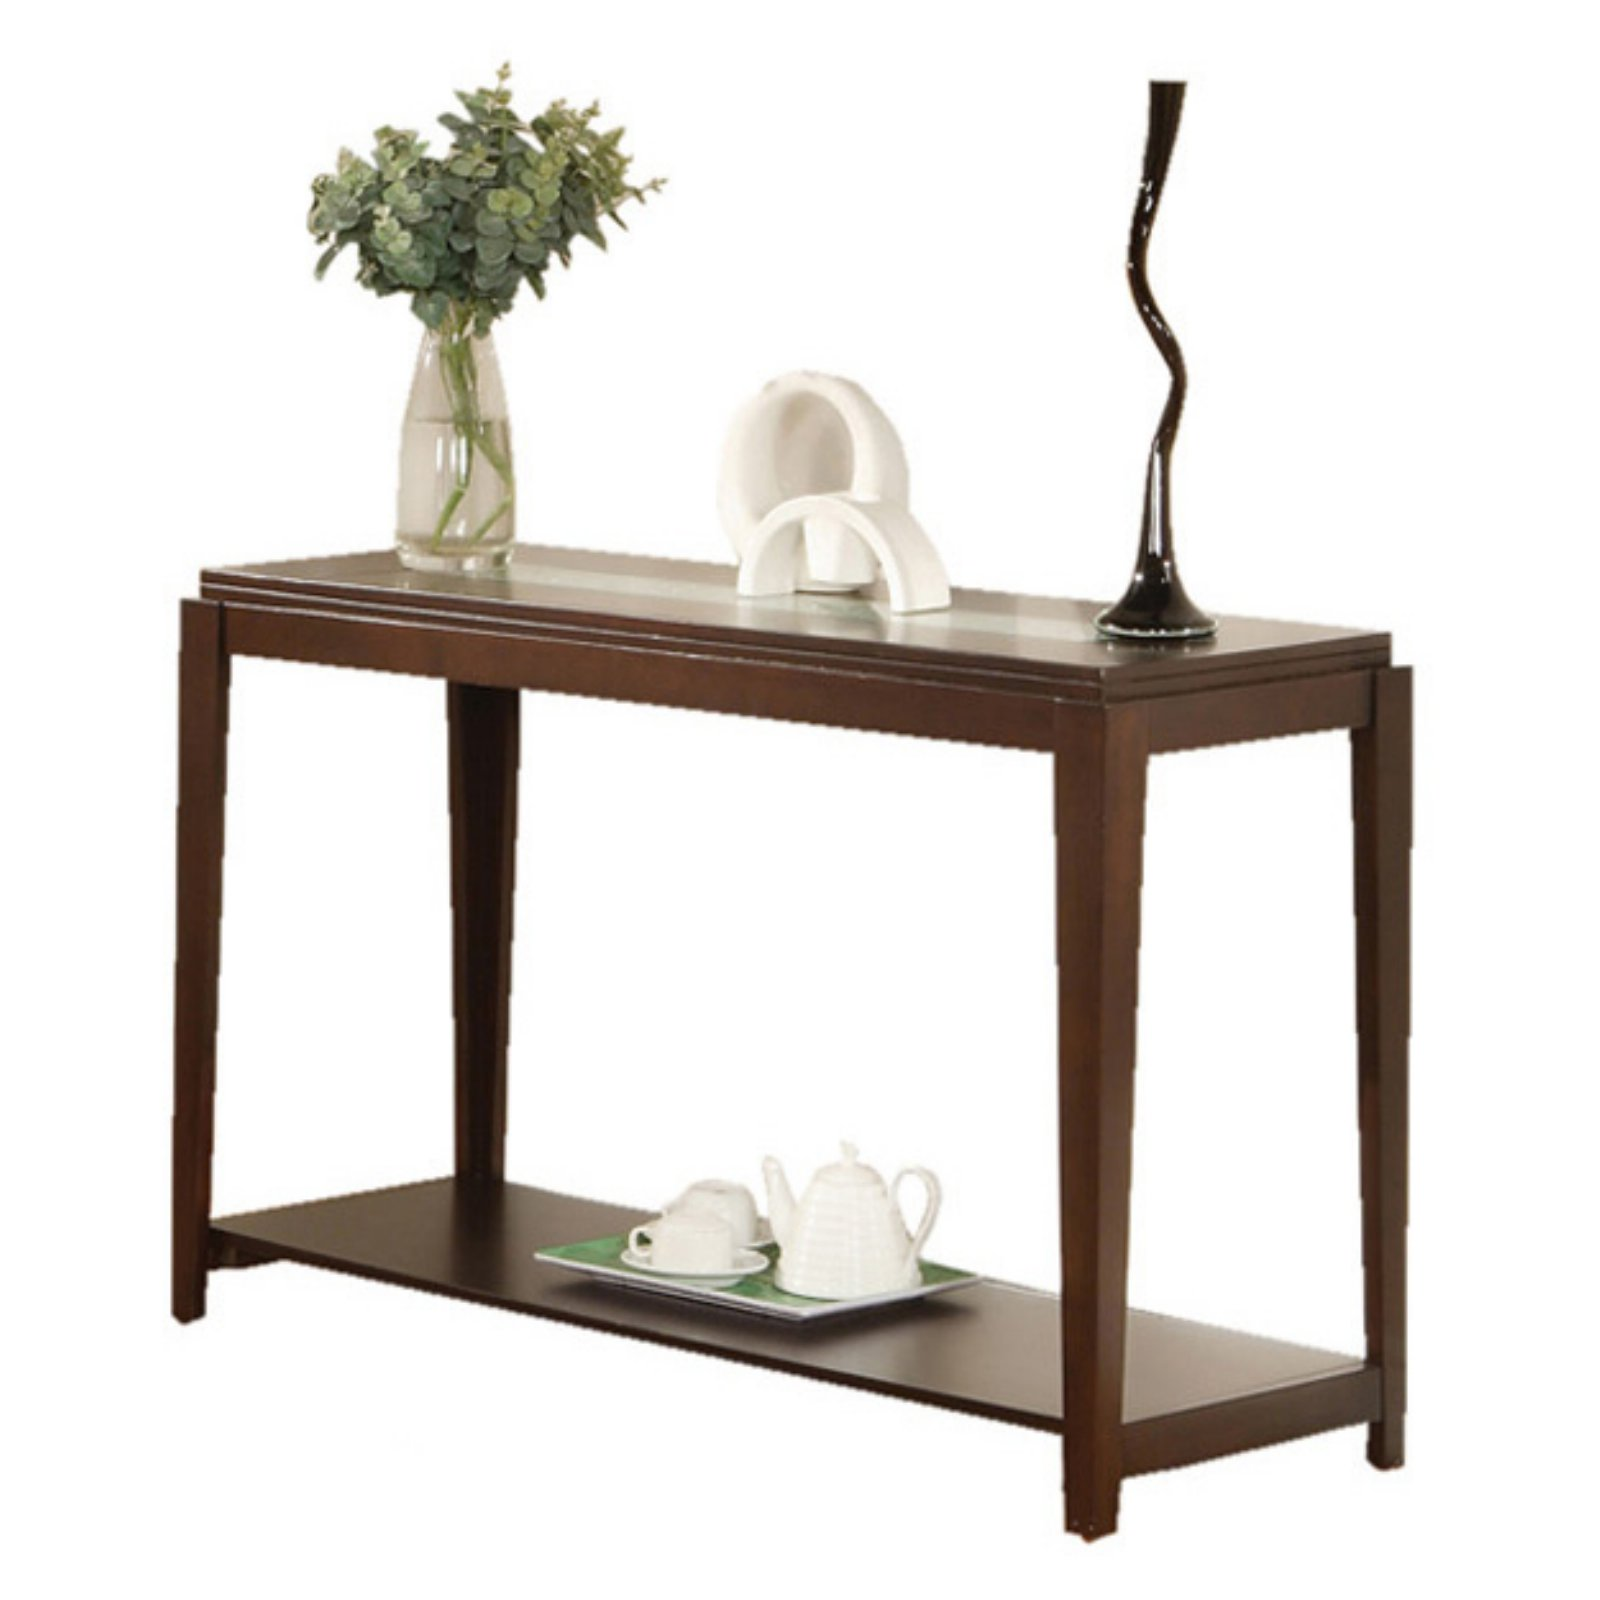 Steve Silver Ice Sofa Table with Cracked Glass Insert - Cherry